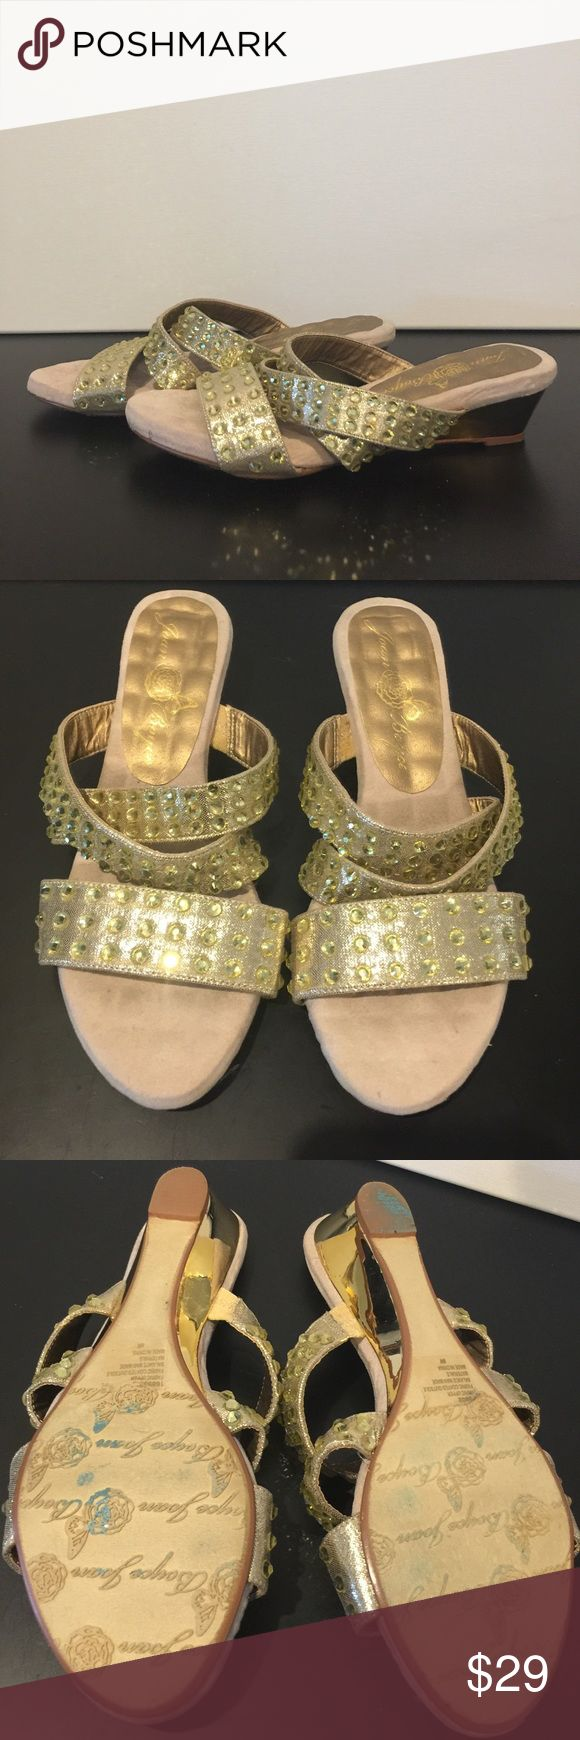 Black sandals littlewoods - Joan Boyce Gold Blingtastic Low Wedge Sandal 8w Bling Love These Made By Joan